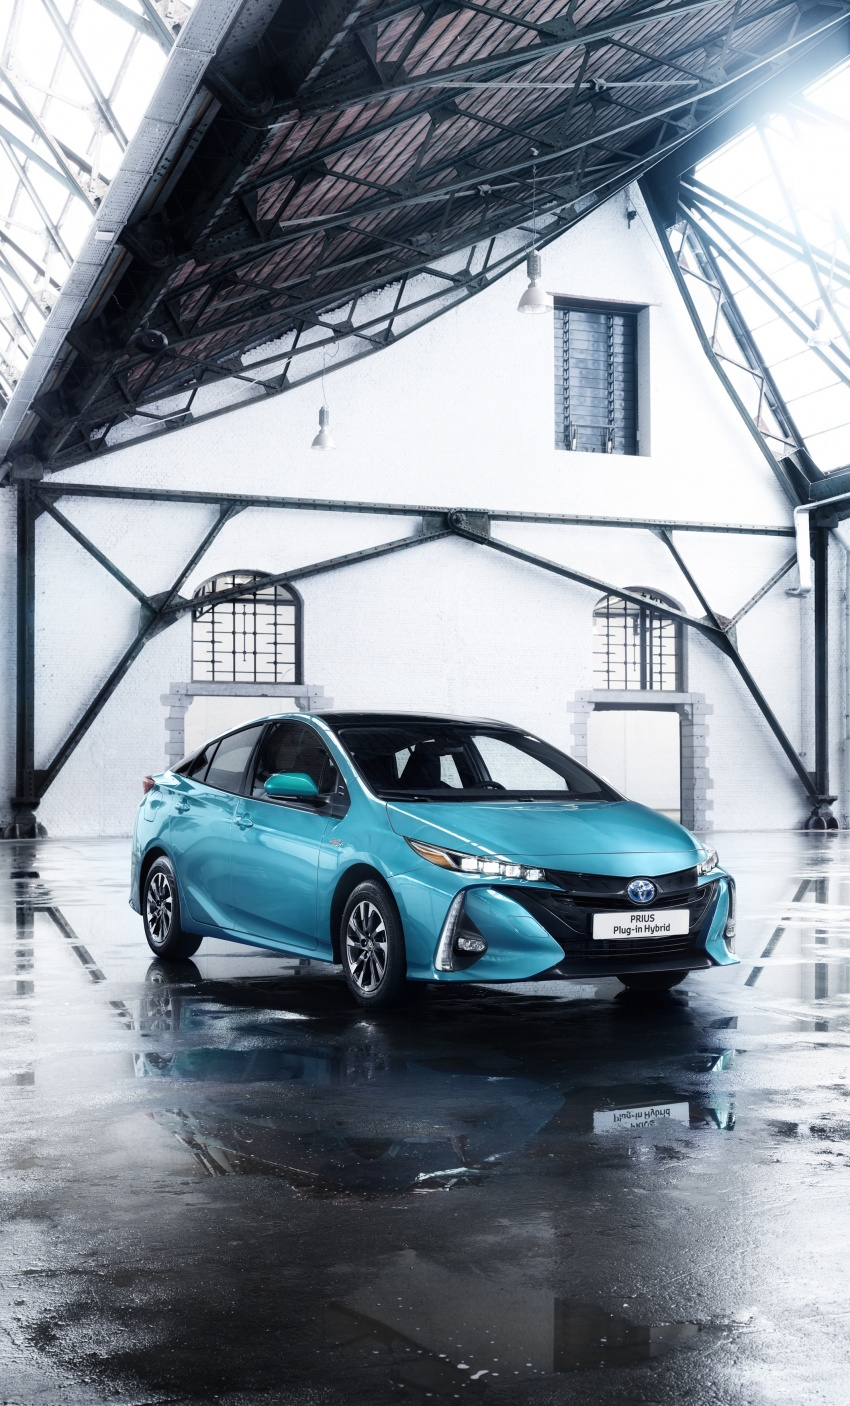 New Toyota Prius Plug-in Hybrid – double the EV range Image #612838